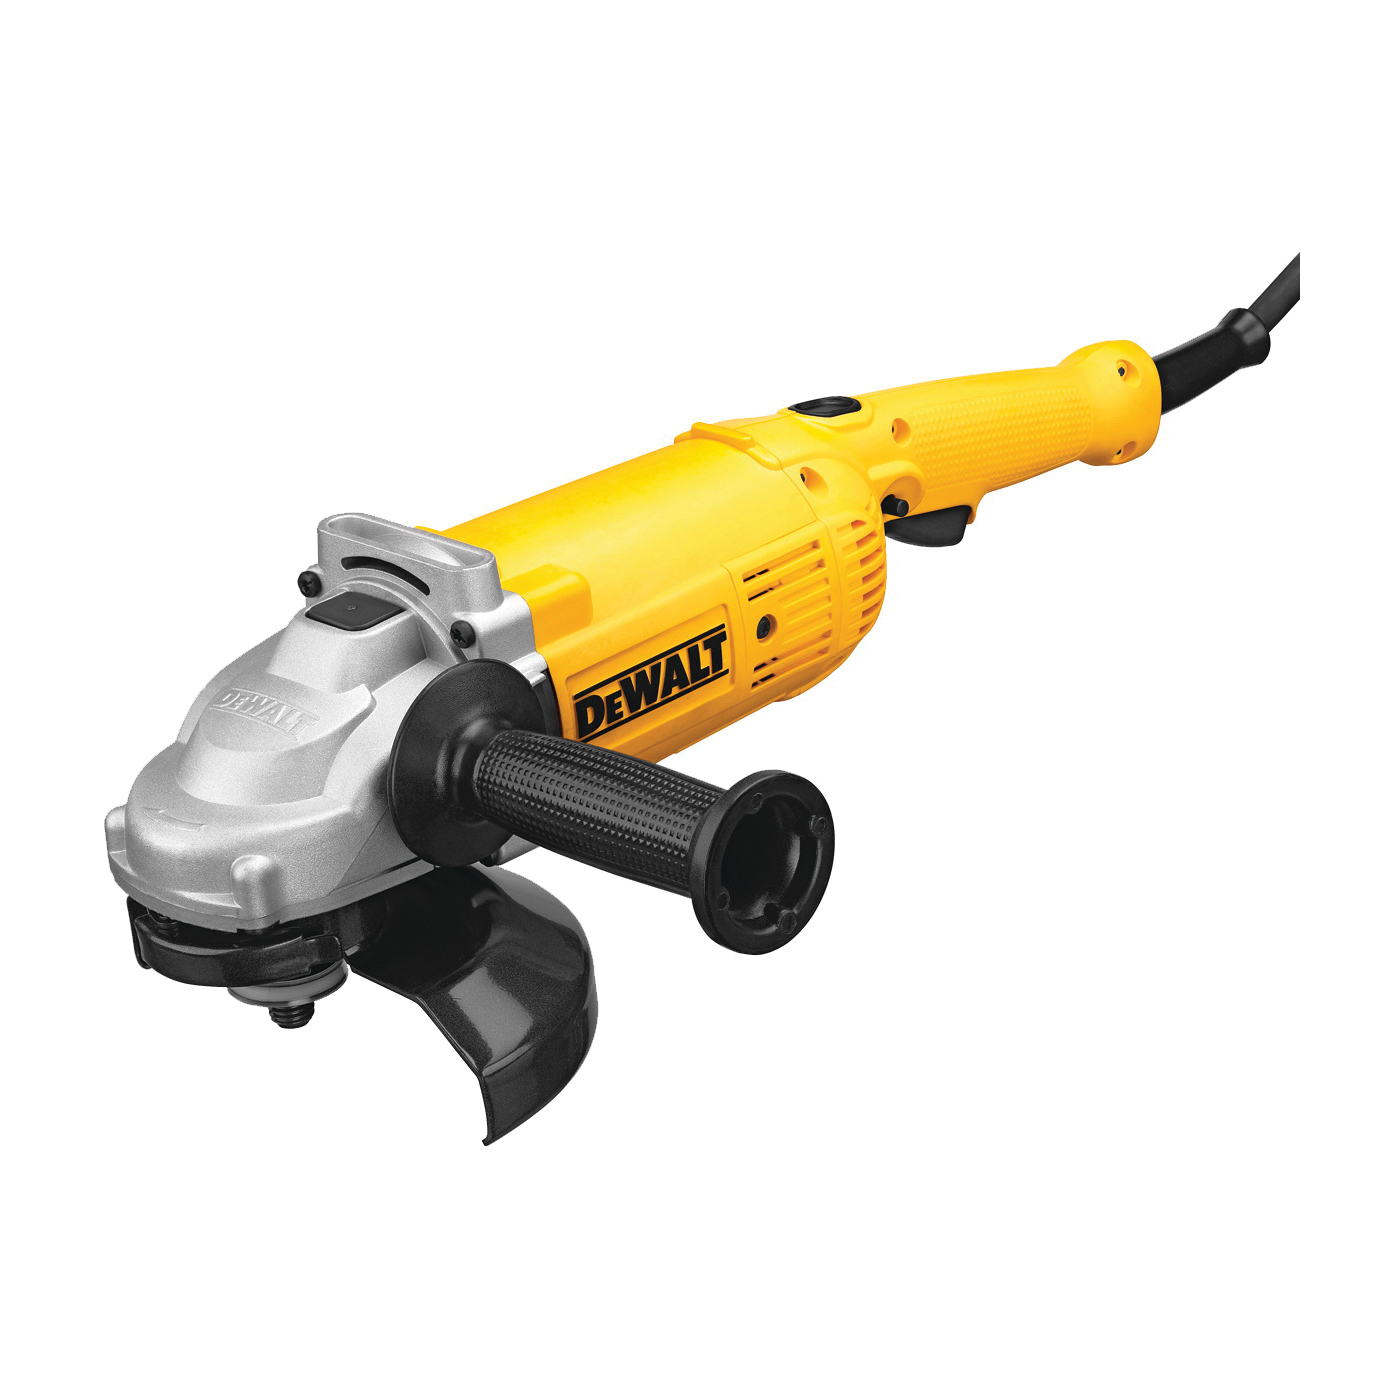 Picture of DeWALT DWE4517 Corded Angle Grinder, Bare Tool, 120 V Battery, 5/8-11 Spindle, 7 in Dia Wheel, 8500 rpm Speed